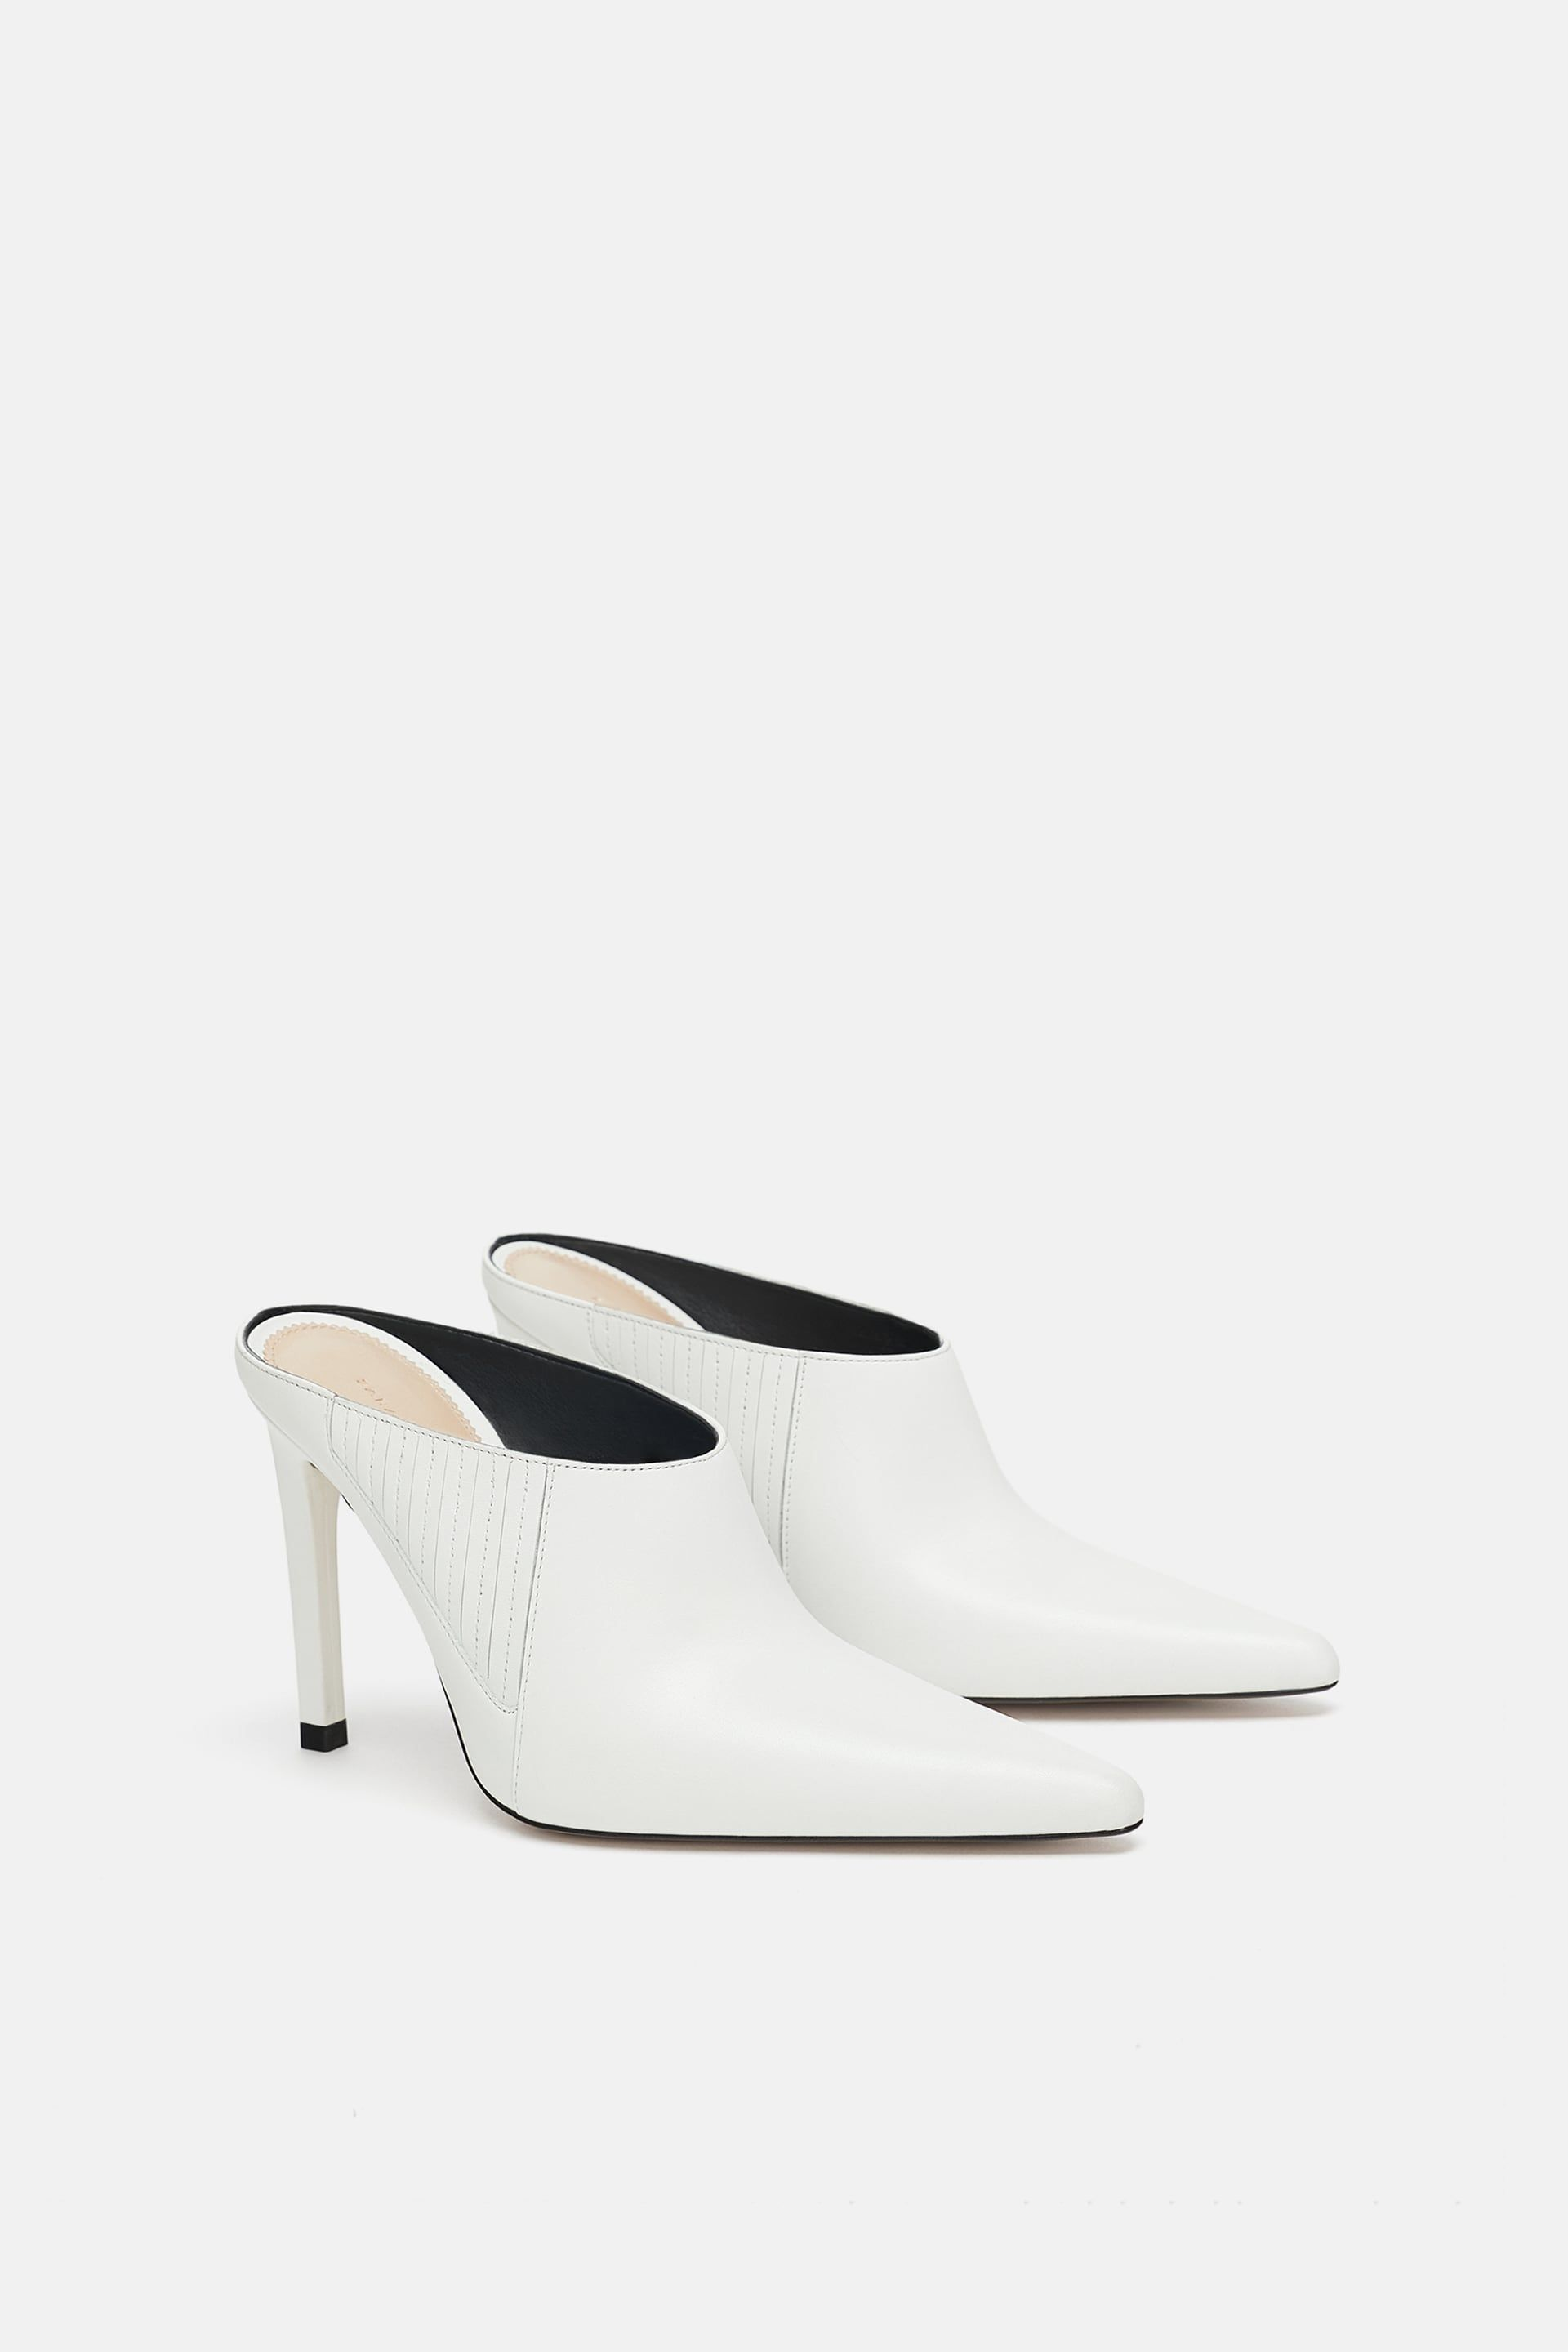 8ded0c996d61 LEATHER HEELED MULES Leather Mules